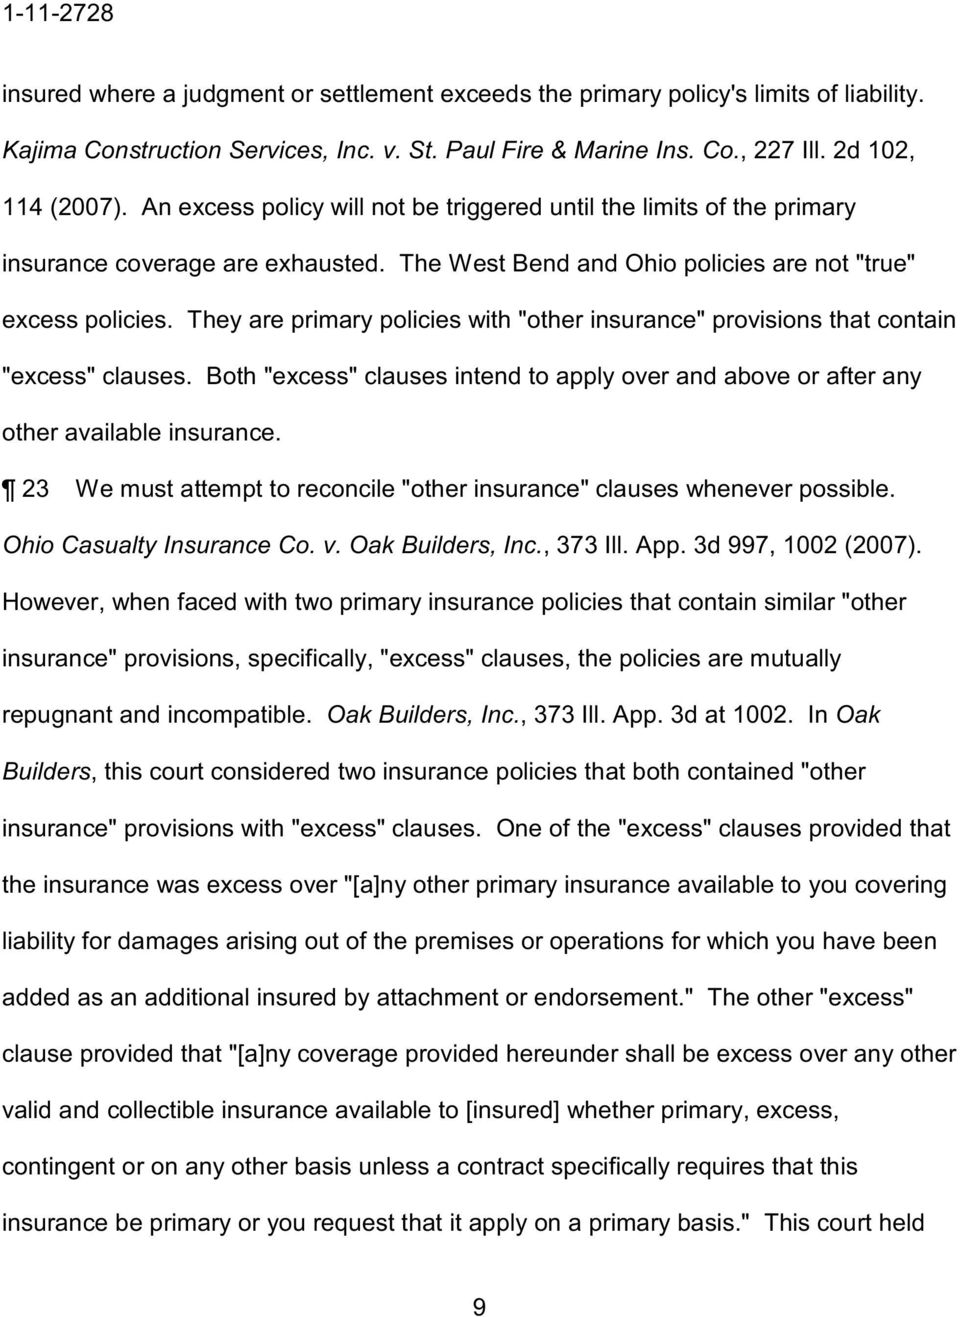 "They are primary policies with ""other insurance"" provisions that contain ""excess"" clauses. Both ""excess"" clauses intend to apply over and above or after any other available insurance."